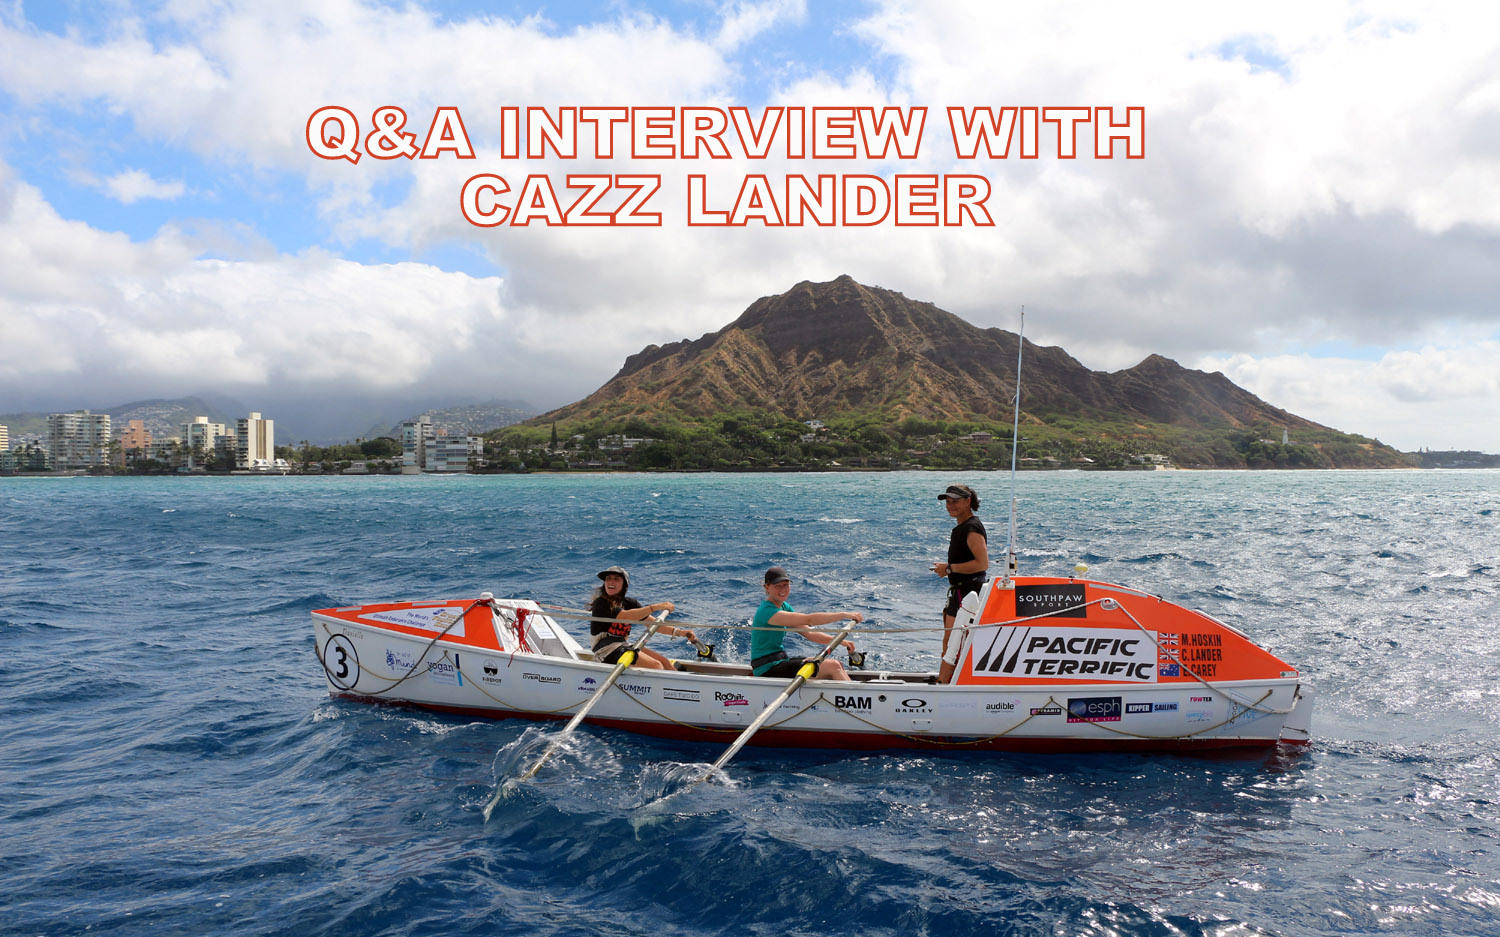 Q&A interview with Cazz Lander